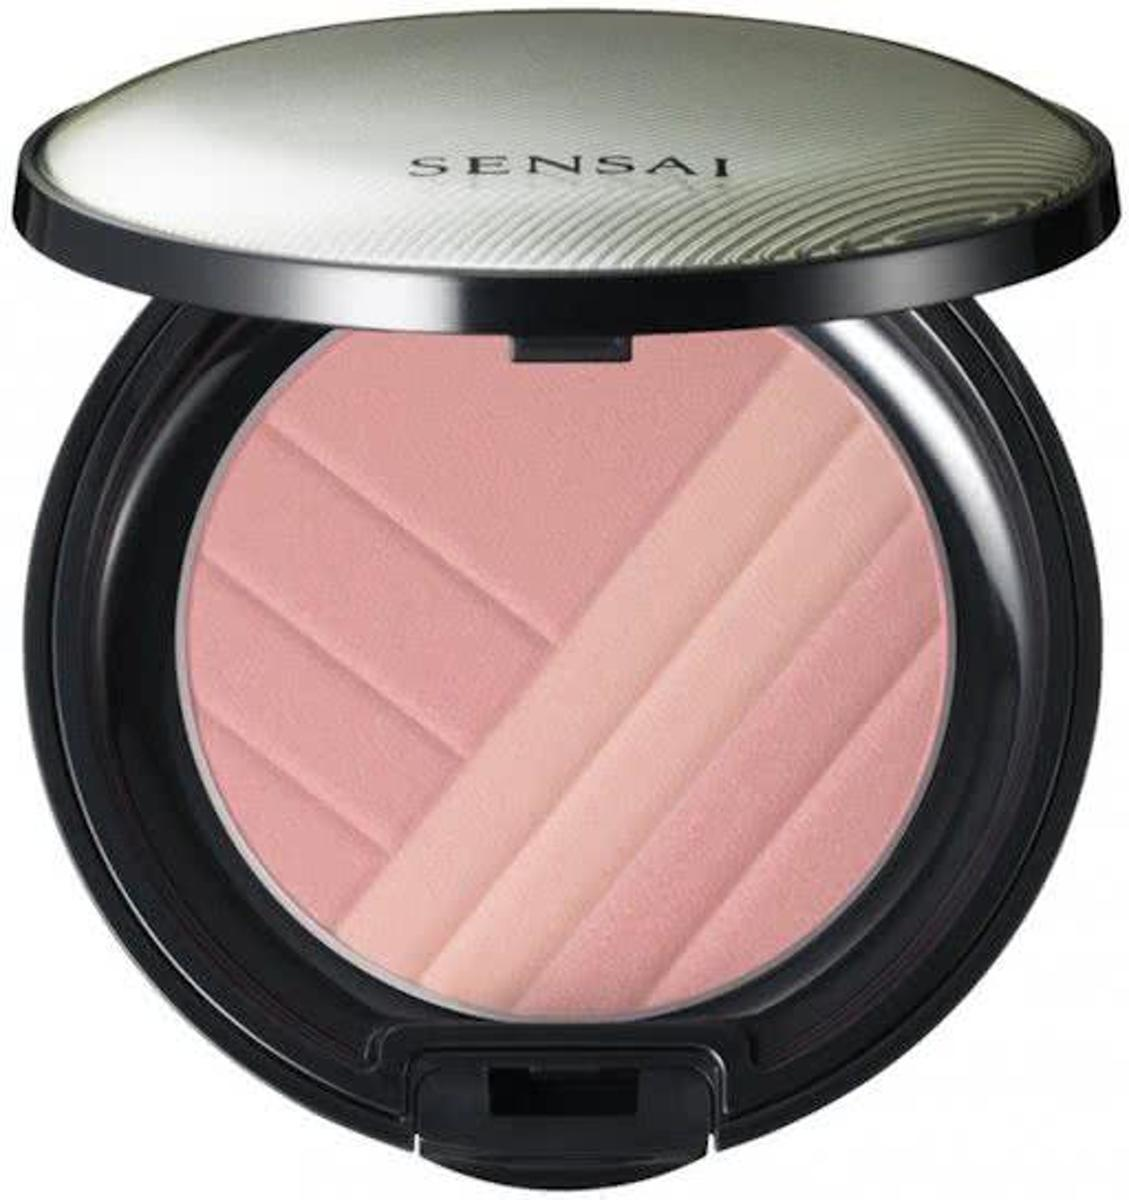 Kanebo Cheek Blush Blush 4 gr  - Roze